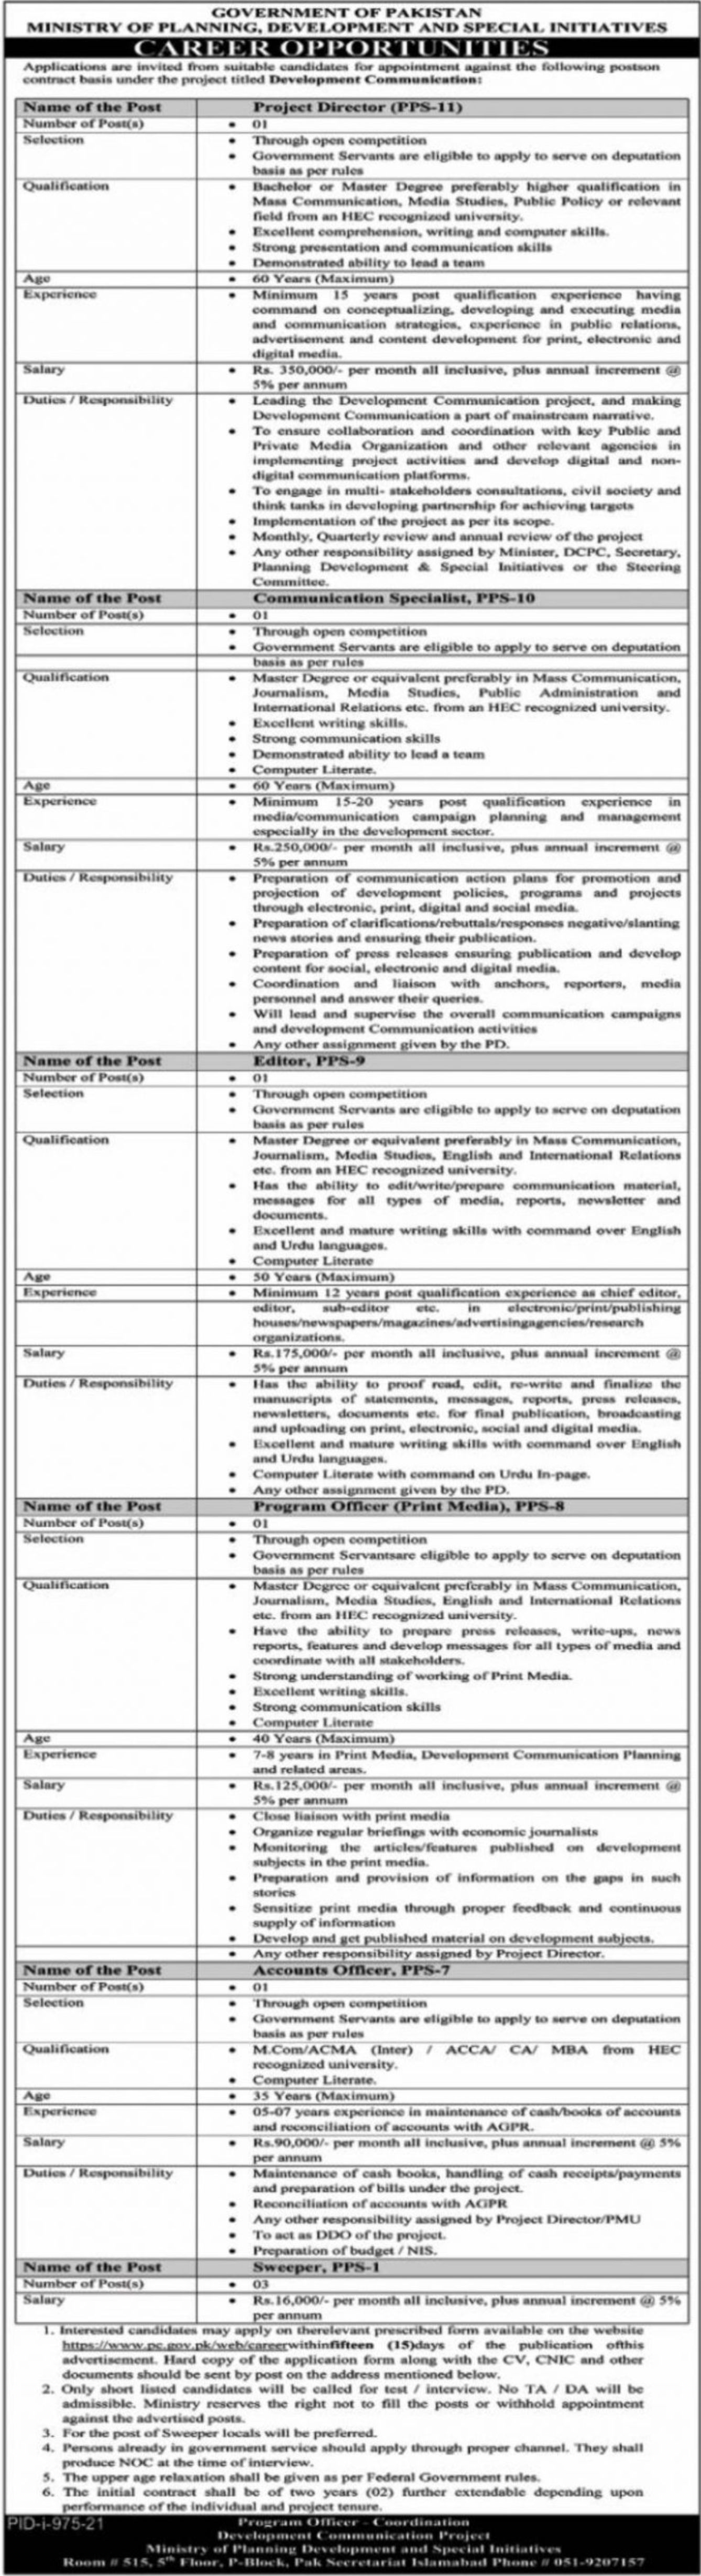 Government of Pakistan Ministry of Planning Development and Special Initiatives Vacancies 2021 2